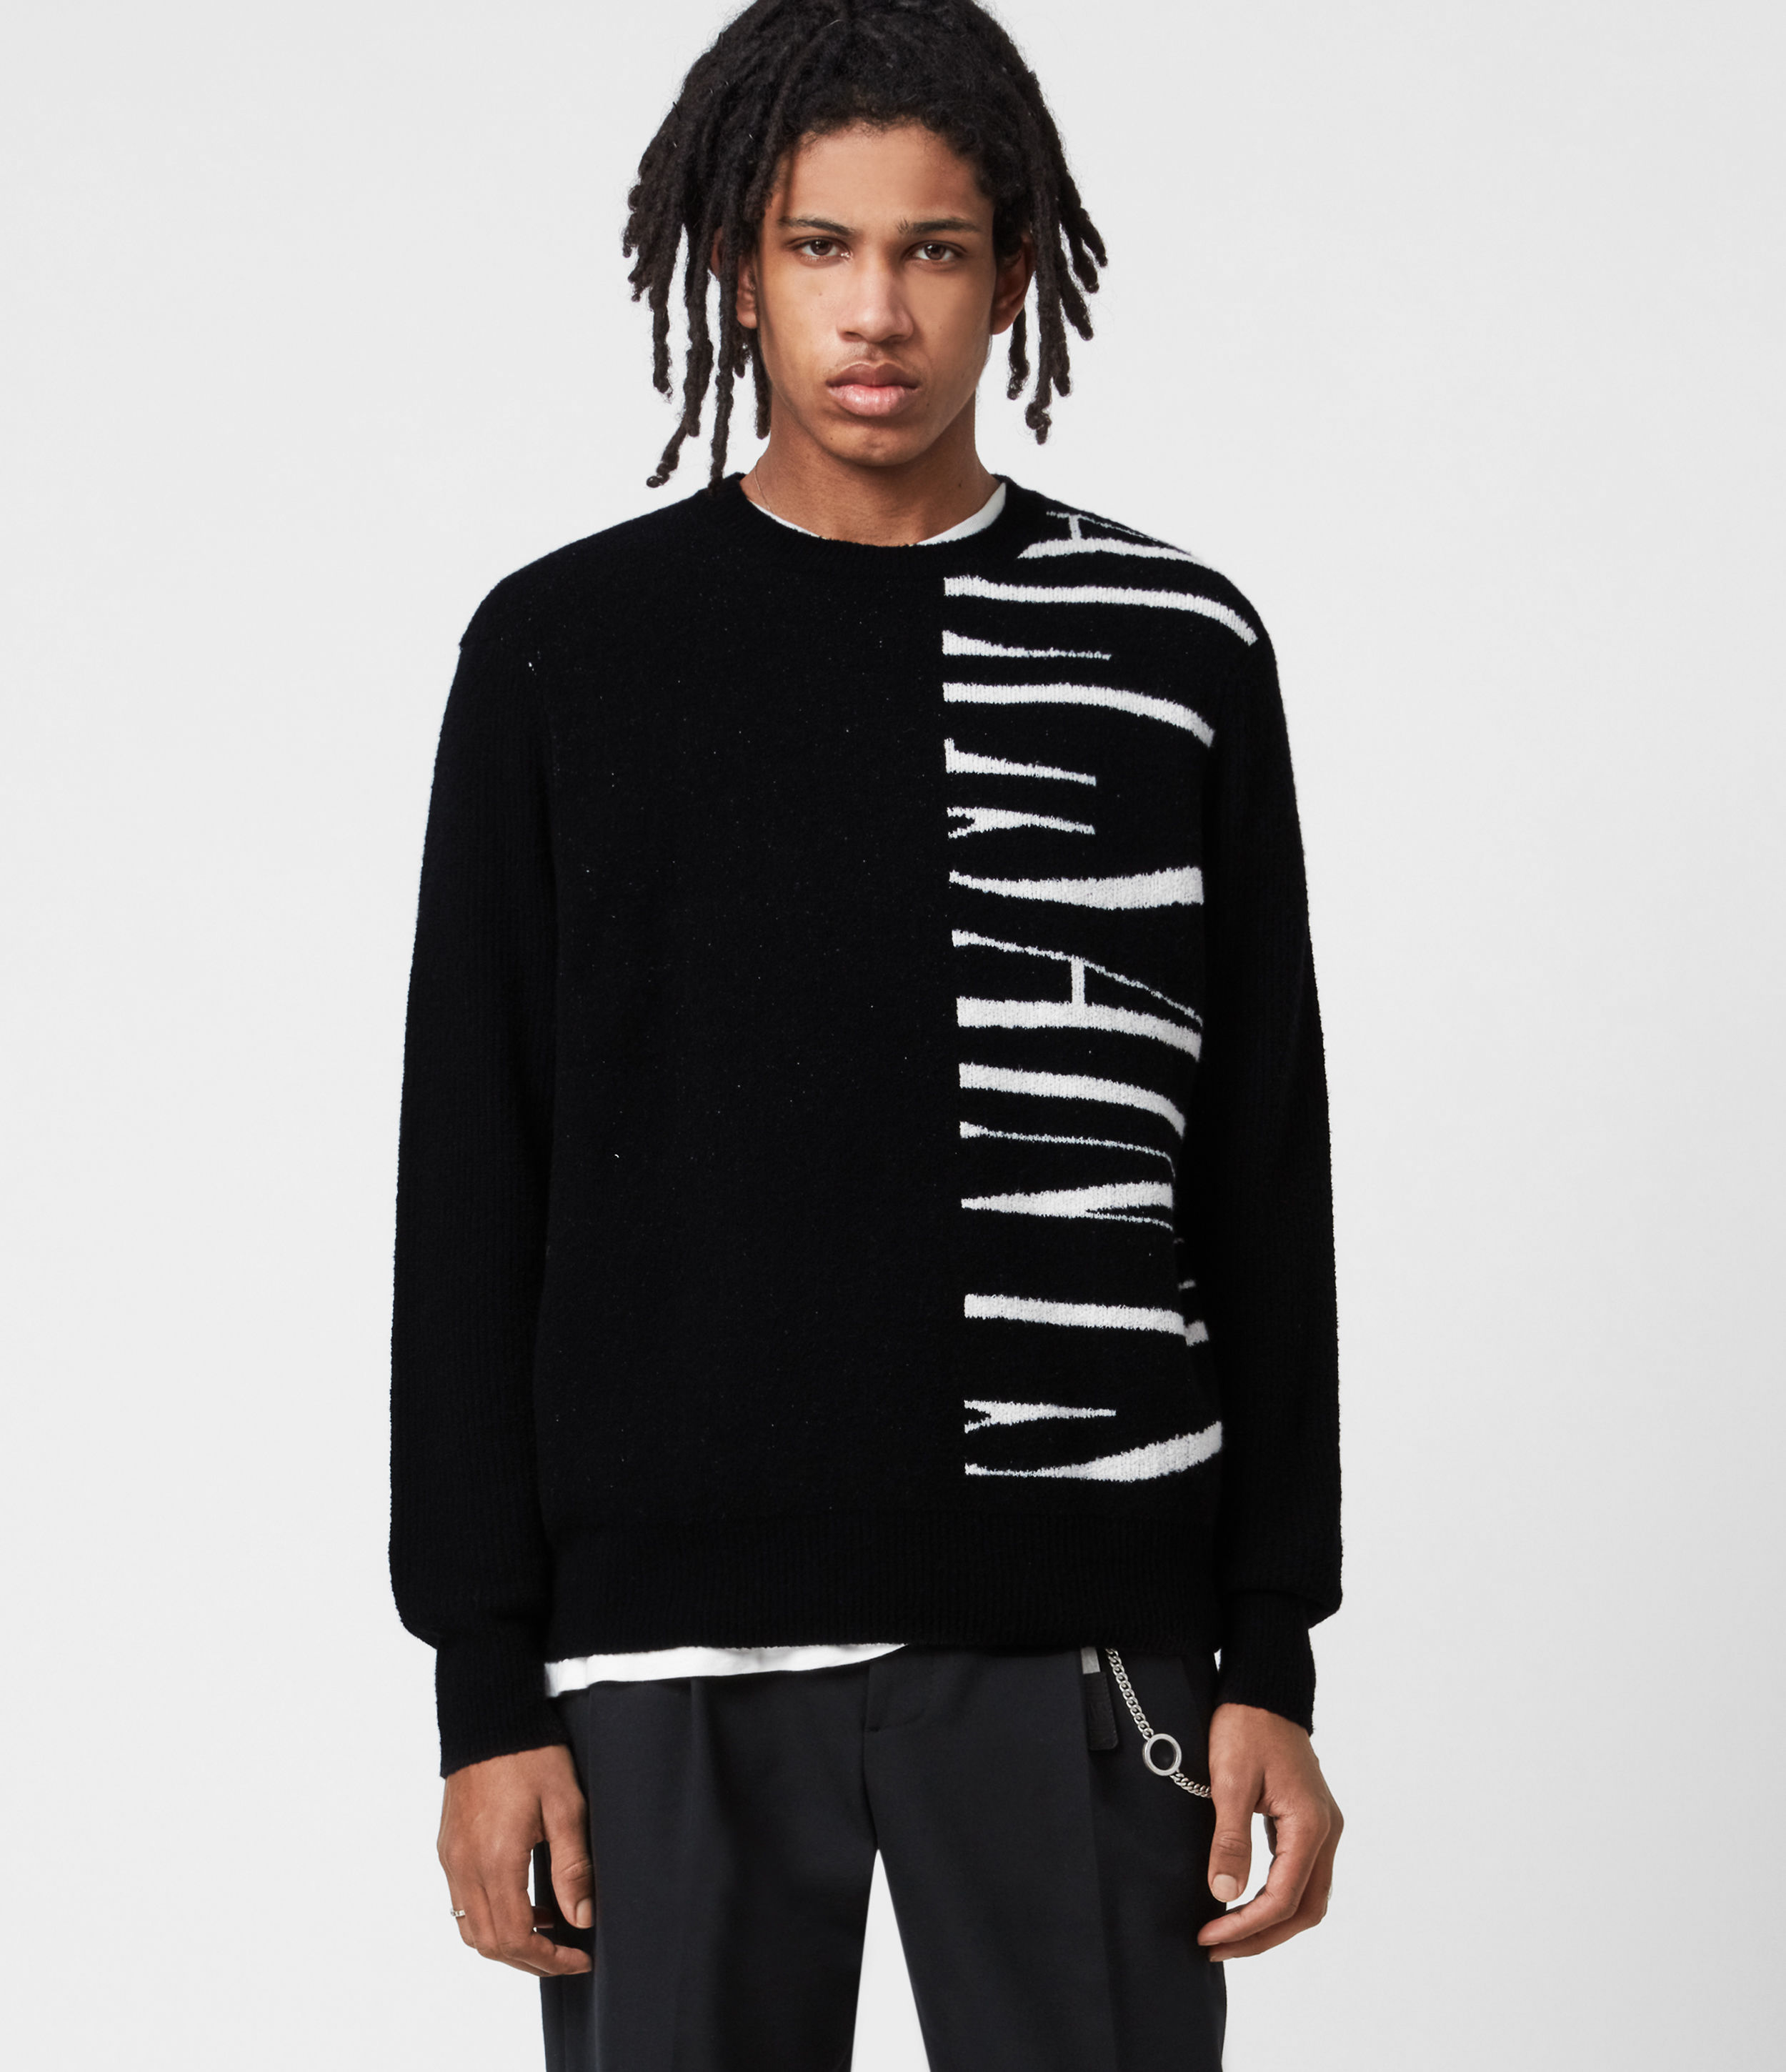 AllSaints Mens Vex Saints Crew Jumper, Black, Size: XL